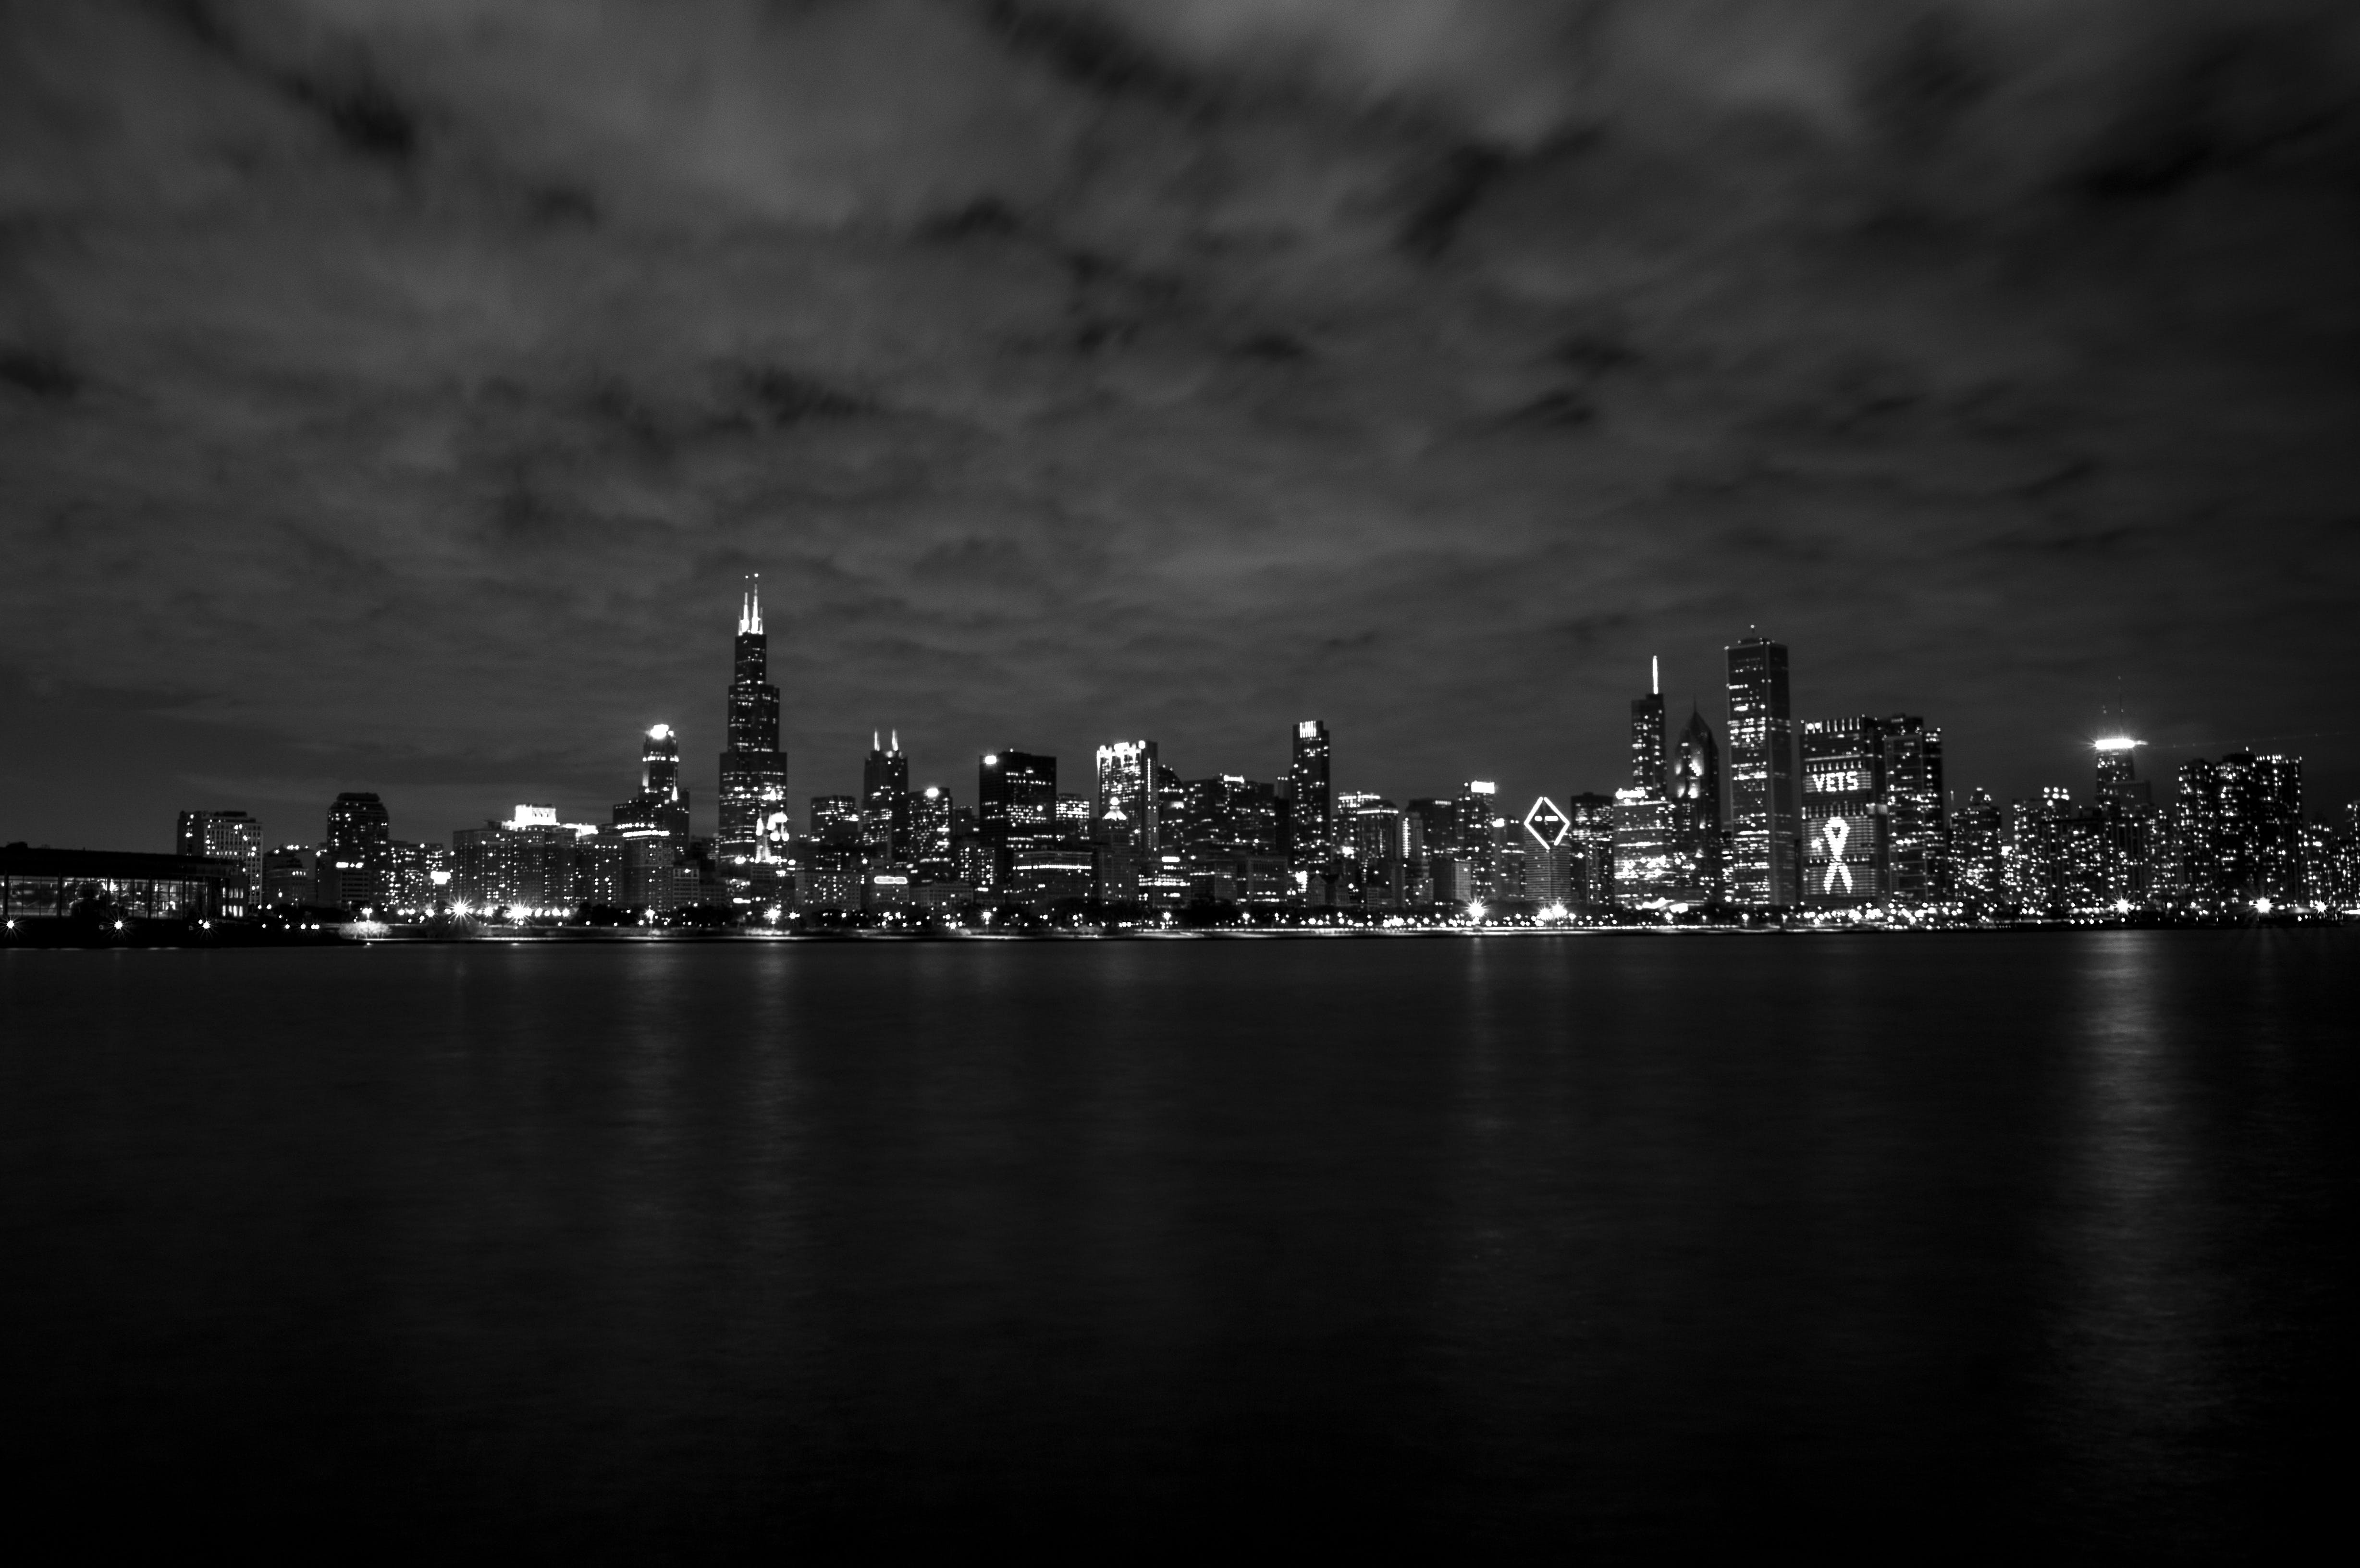 Gray Scale of City Skyline Photography